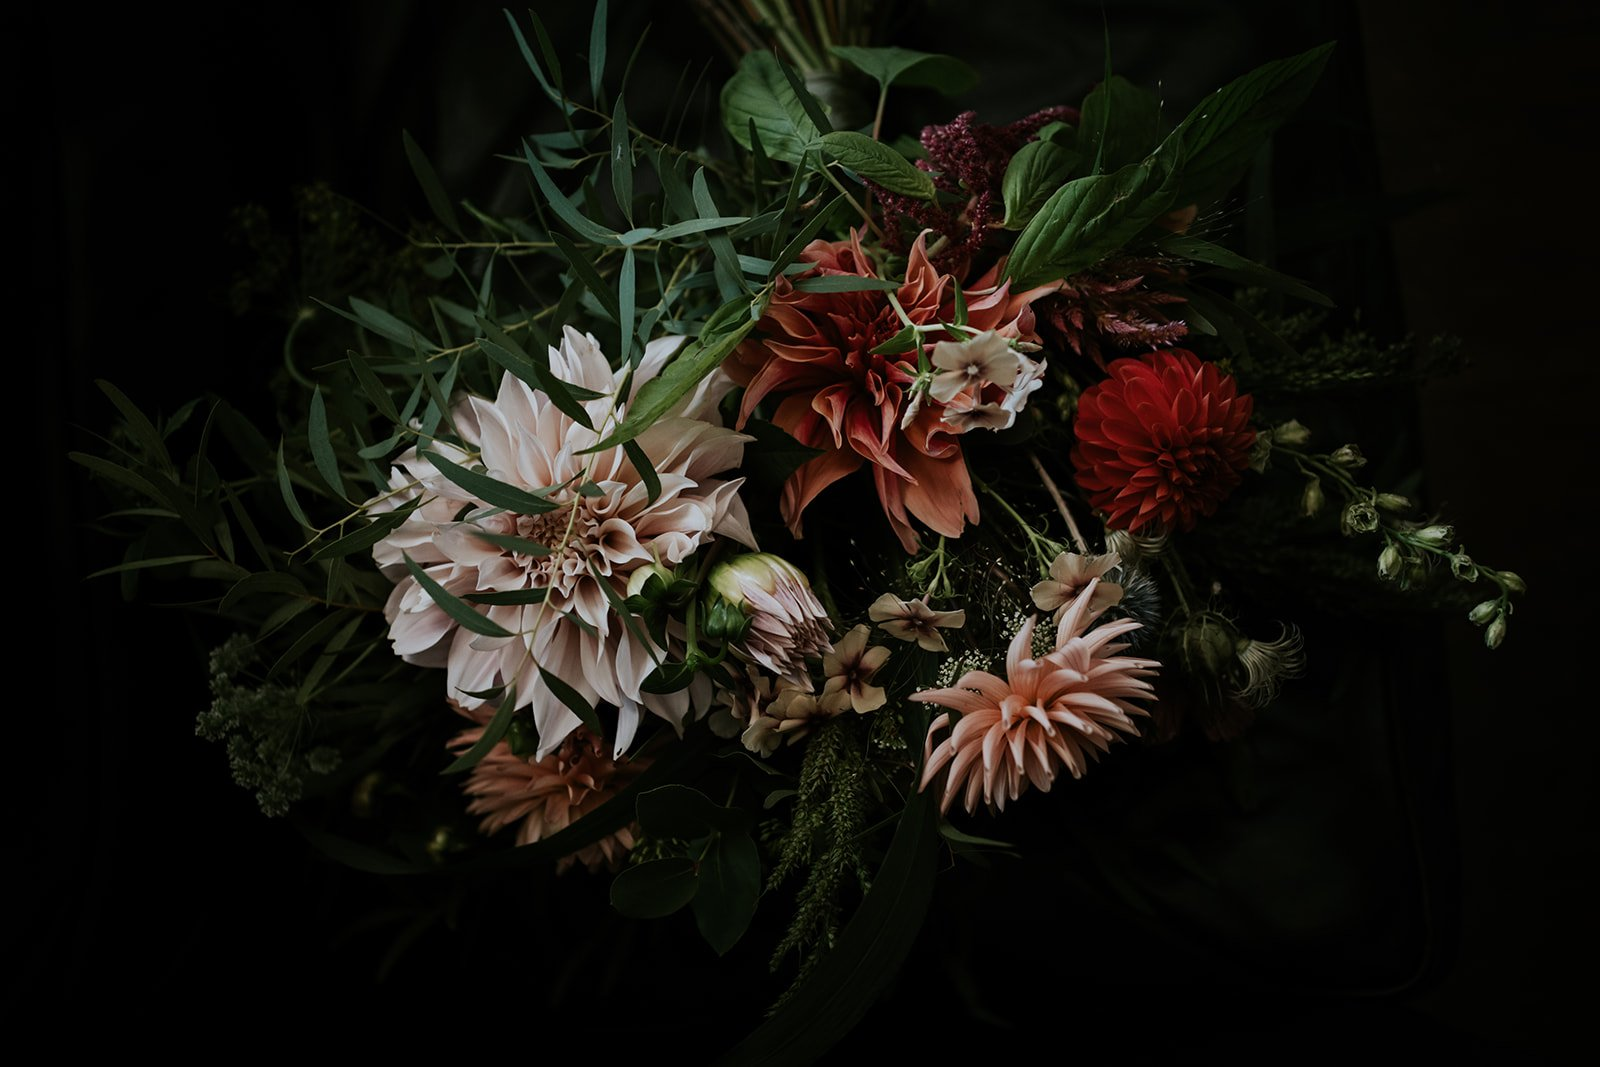 a close up image of a seasonal wild bouquet with lots of reds and pinks and greens